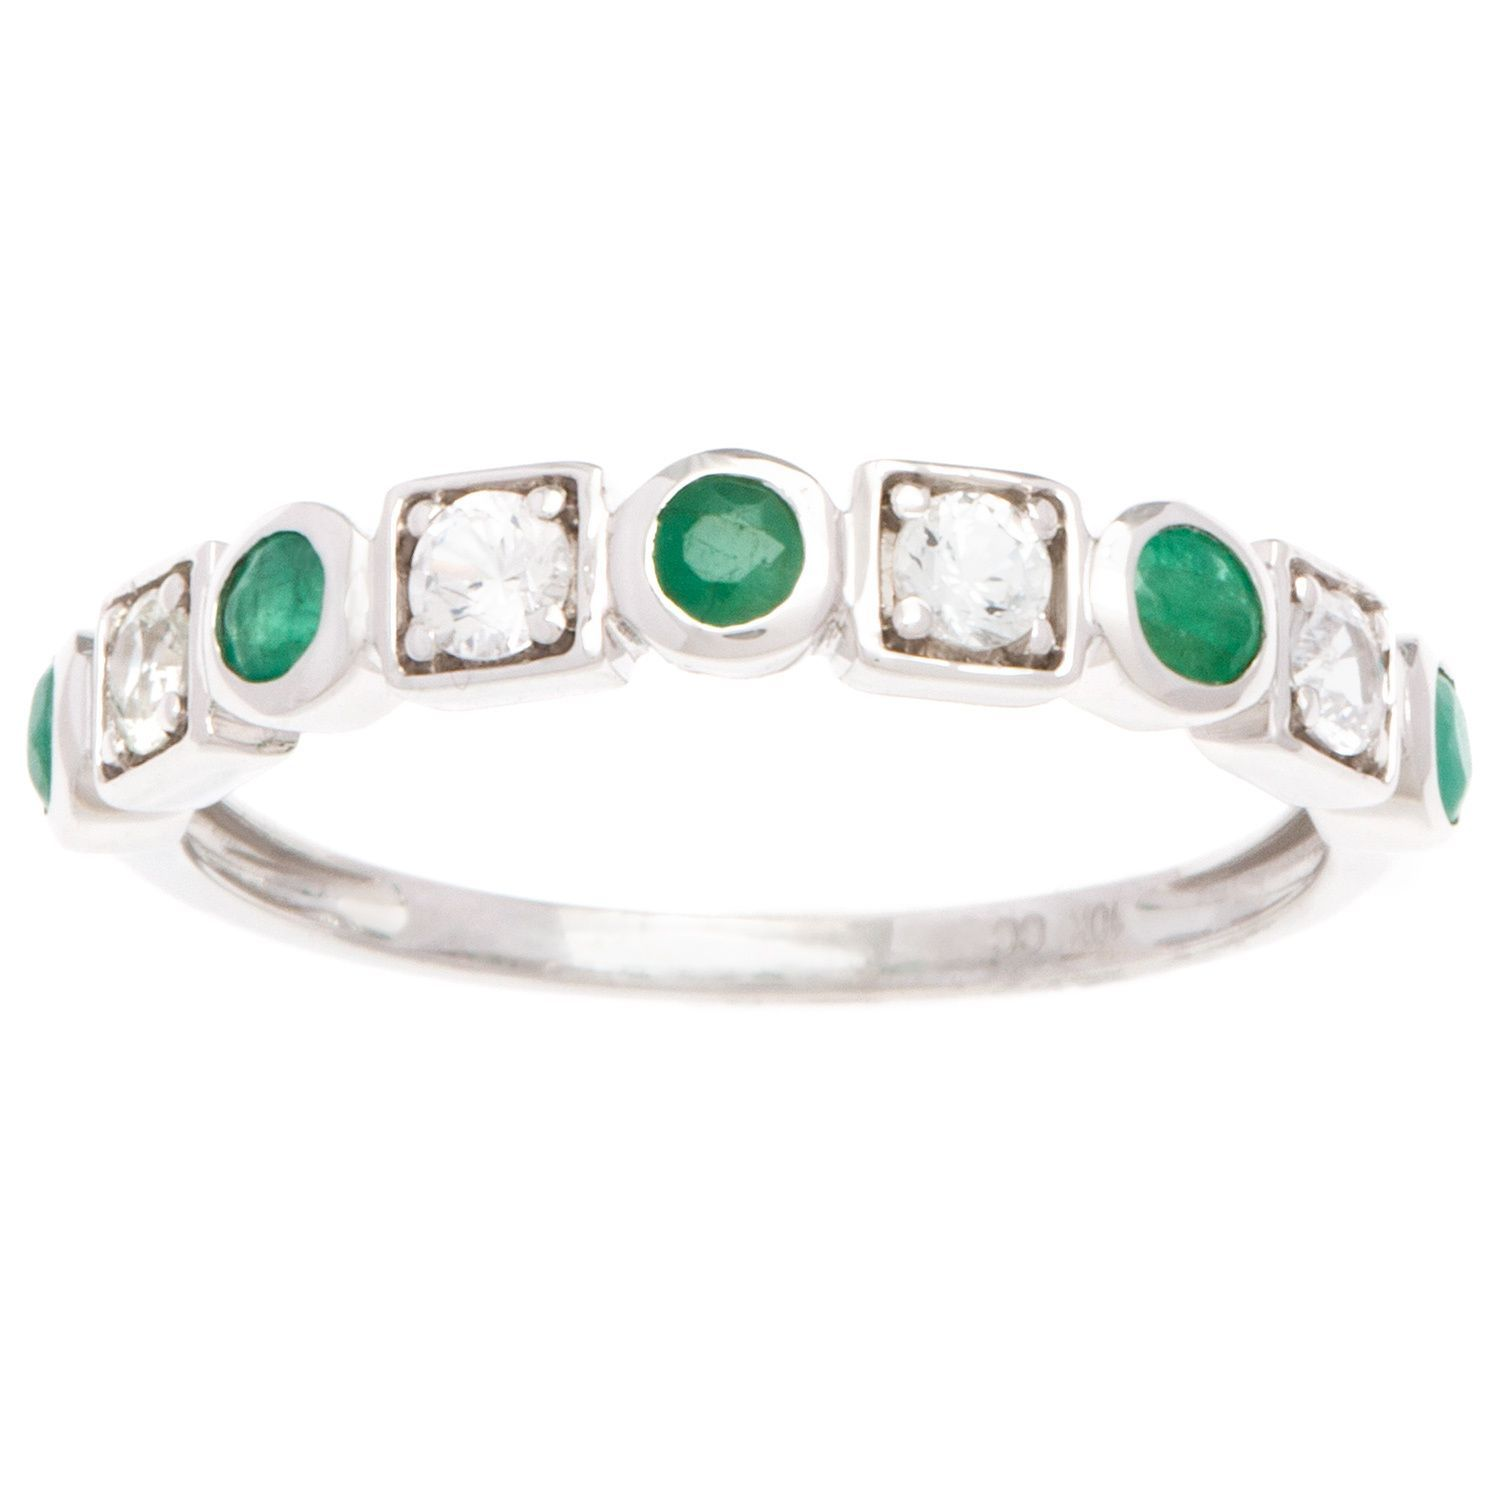 Viducci k gold emerald and white sapphire vintagestyle band